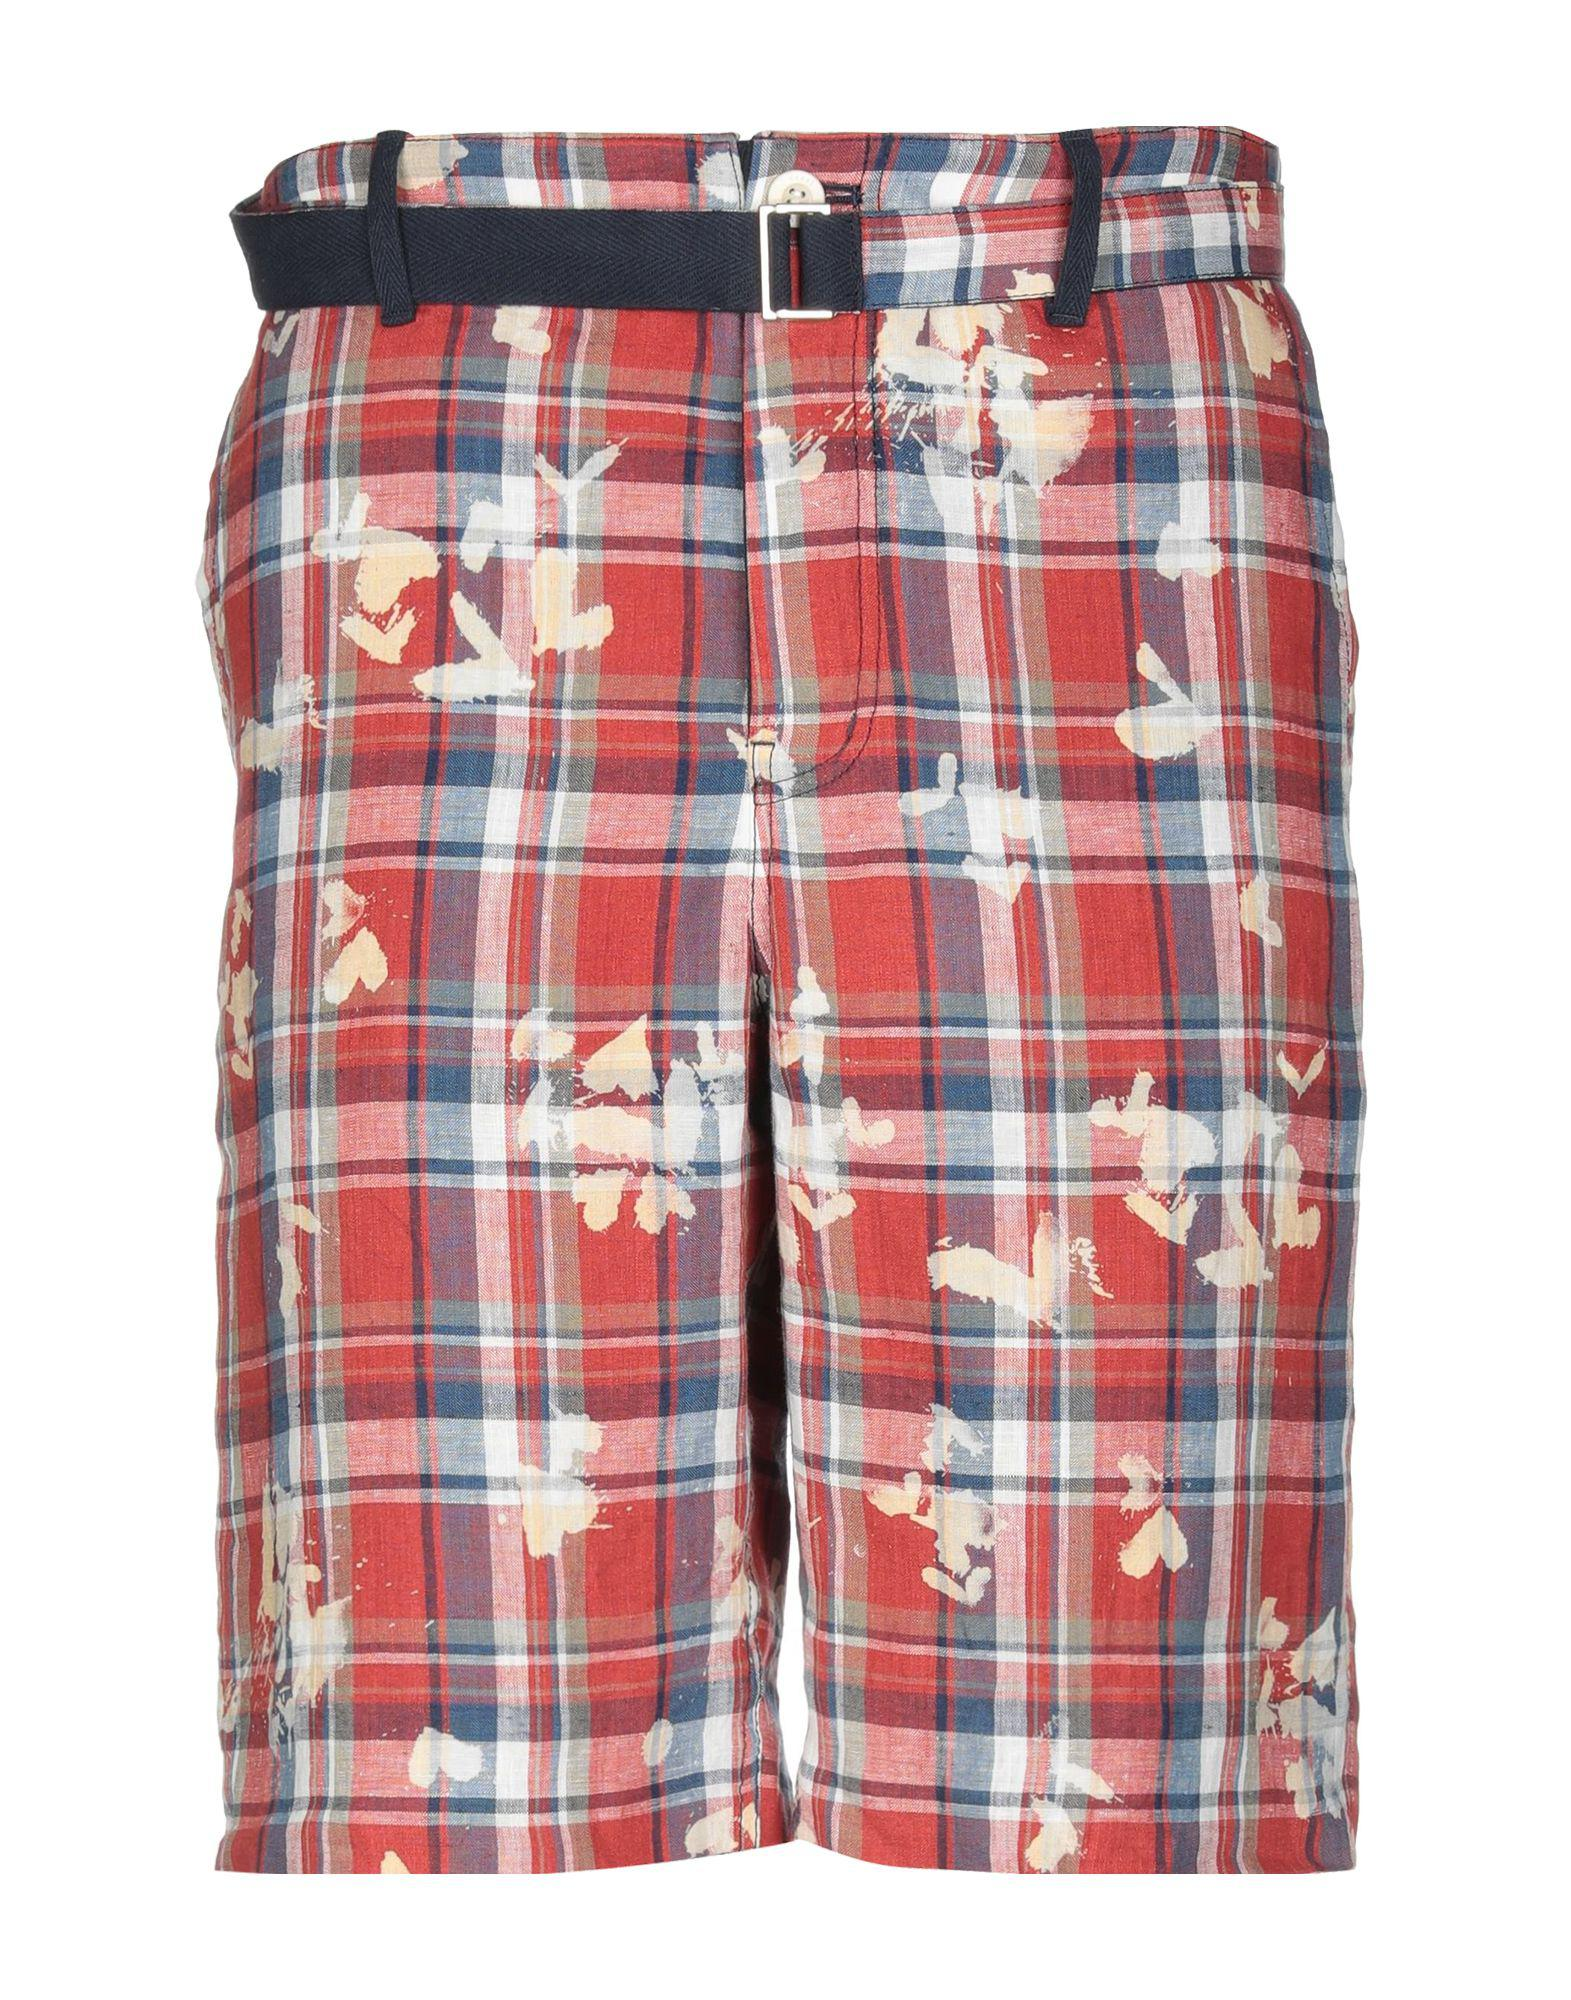 dfc9cbb9c752 Lyst - Sacai Bermuda Shorts in Red for Men